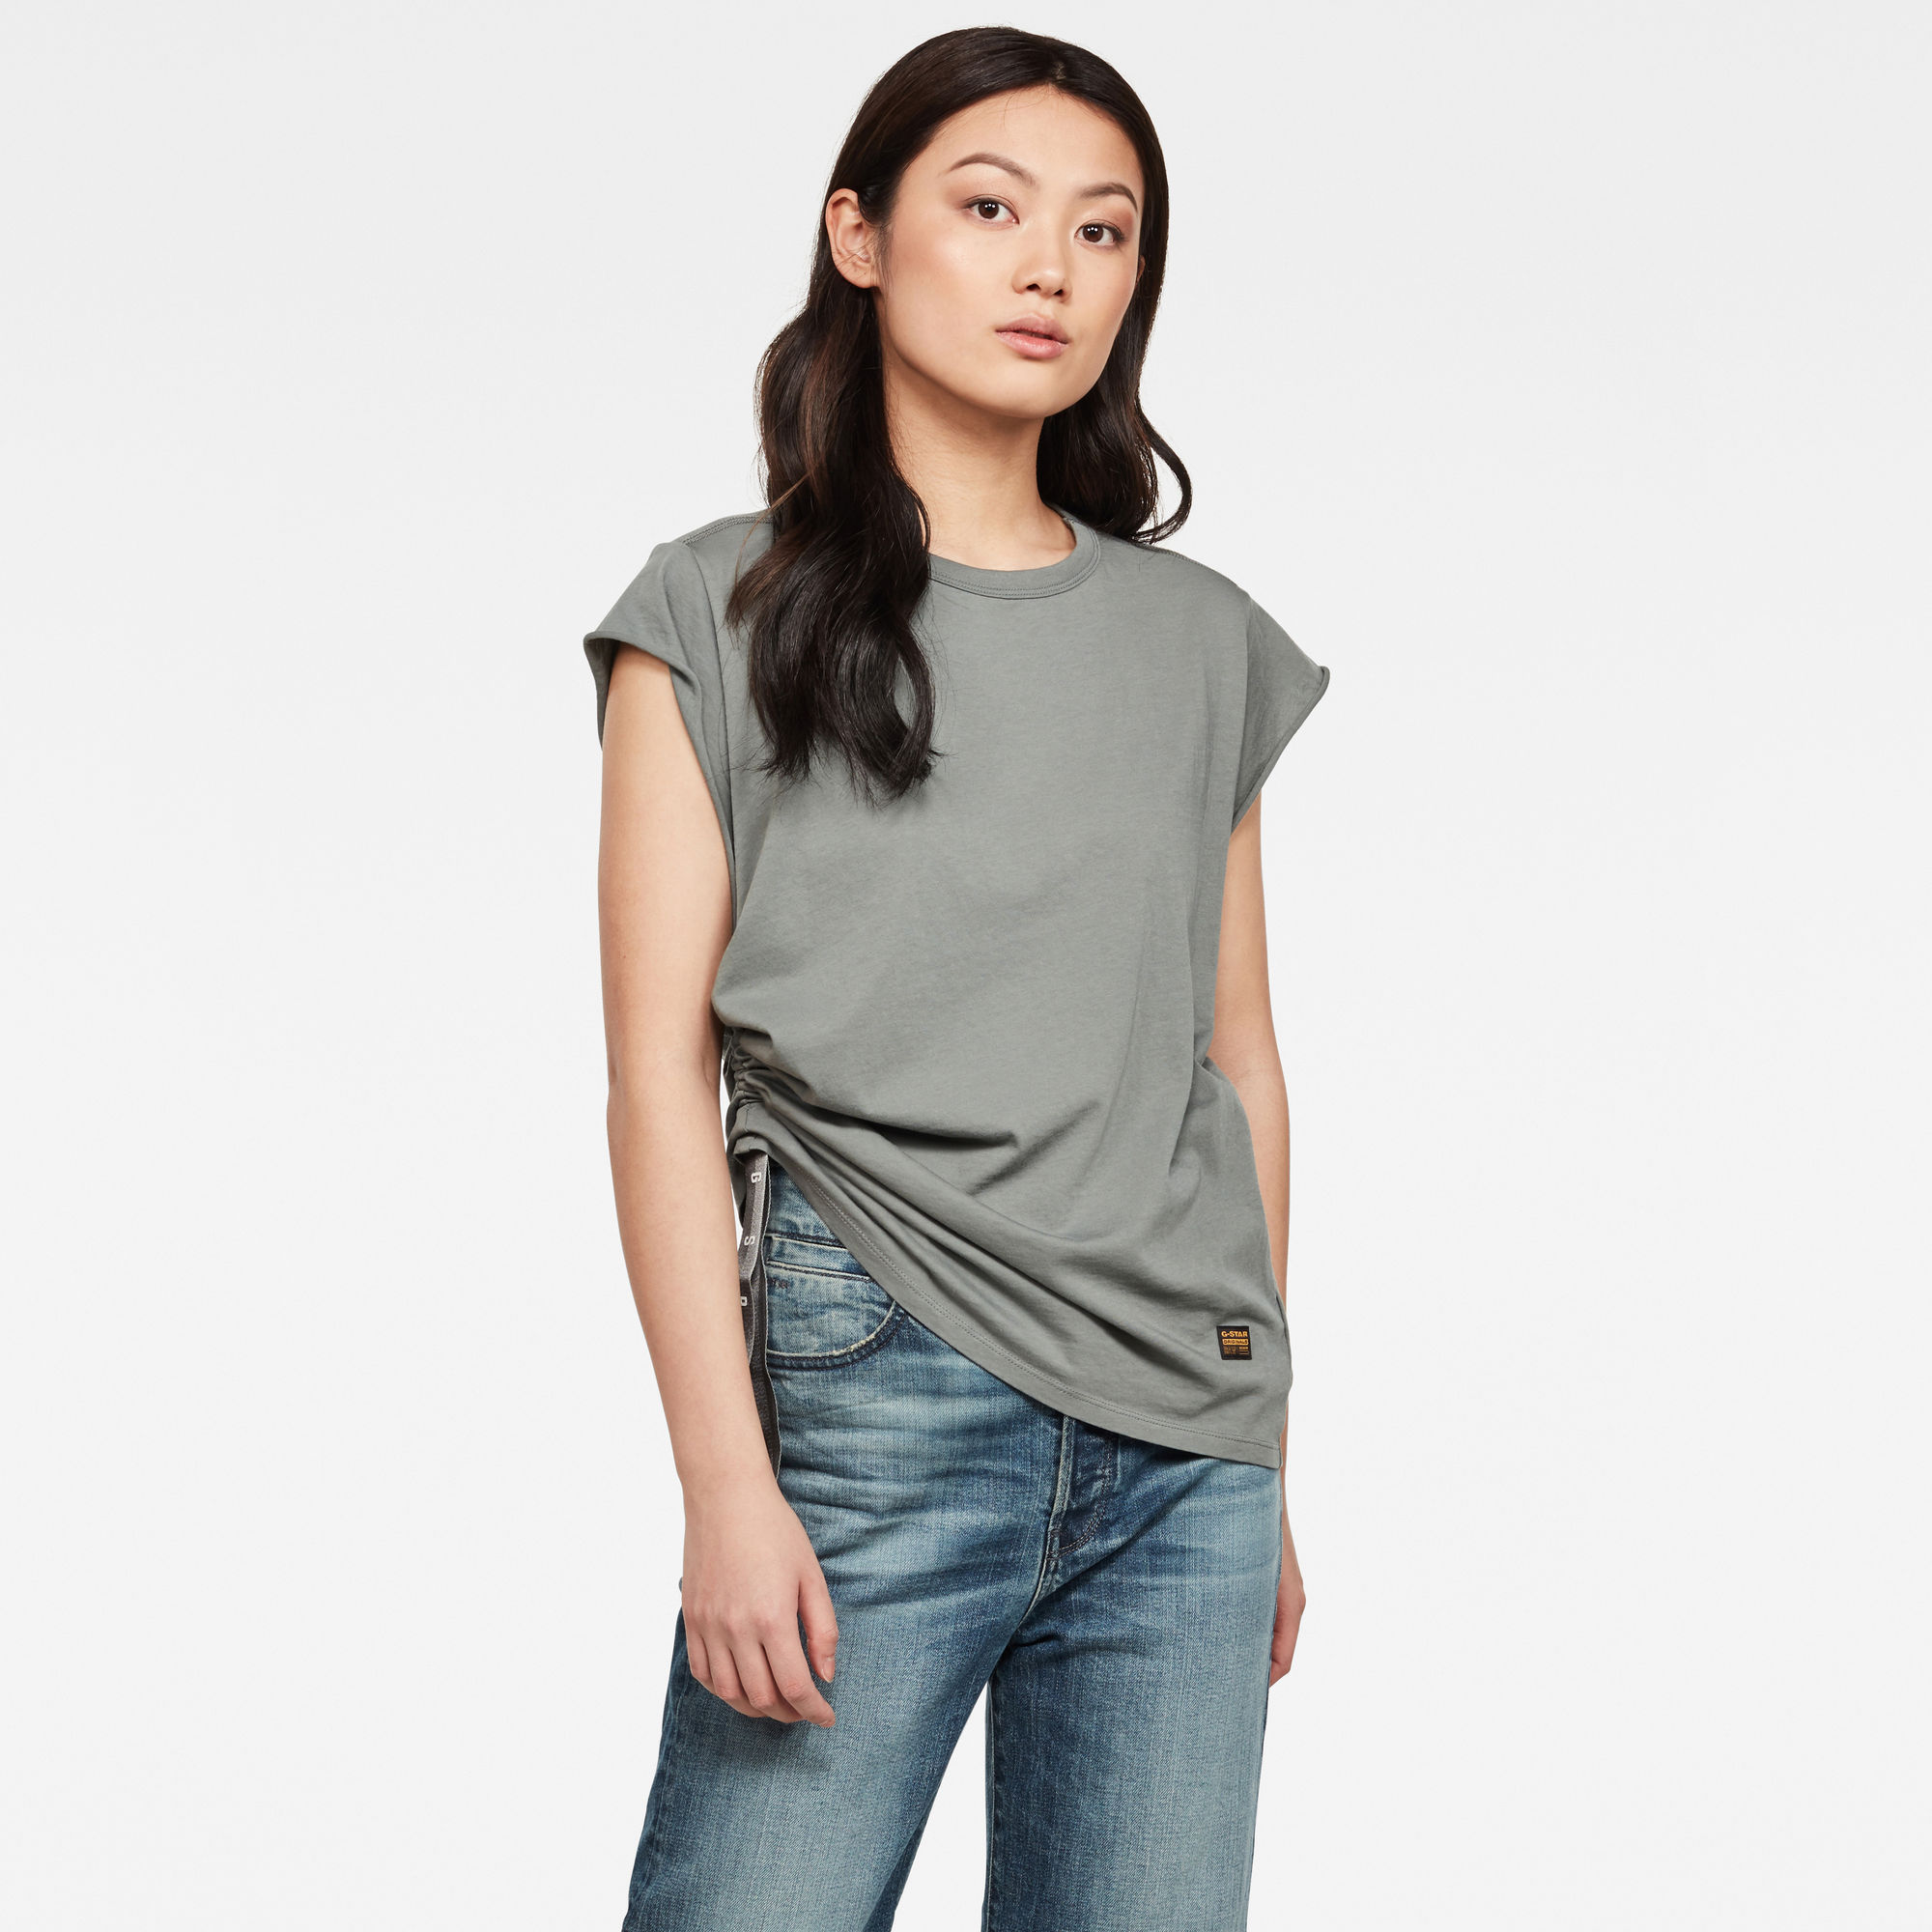 G-Star RAW Dames GSRAW Knotted Top Grijs